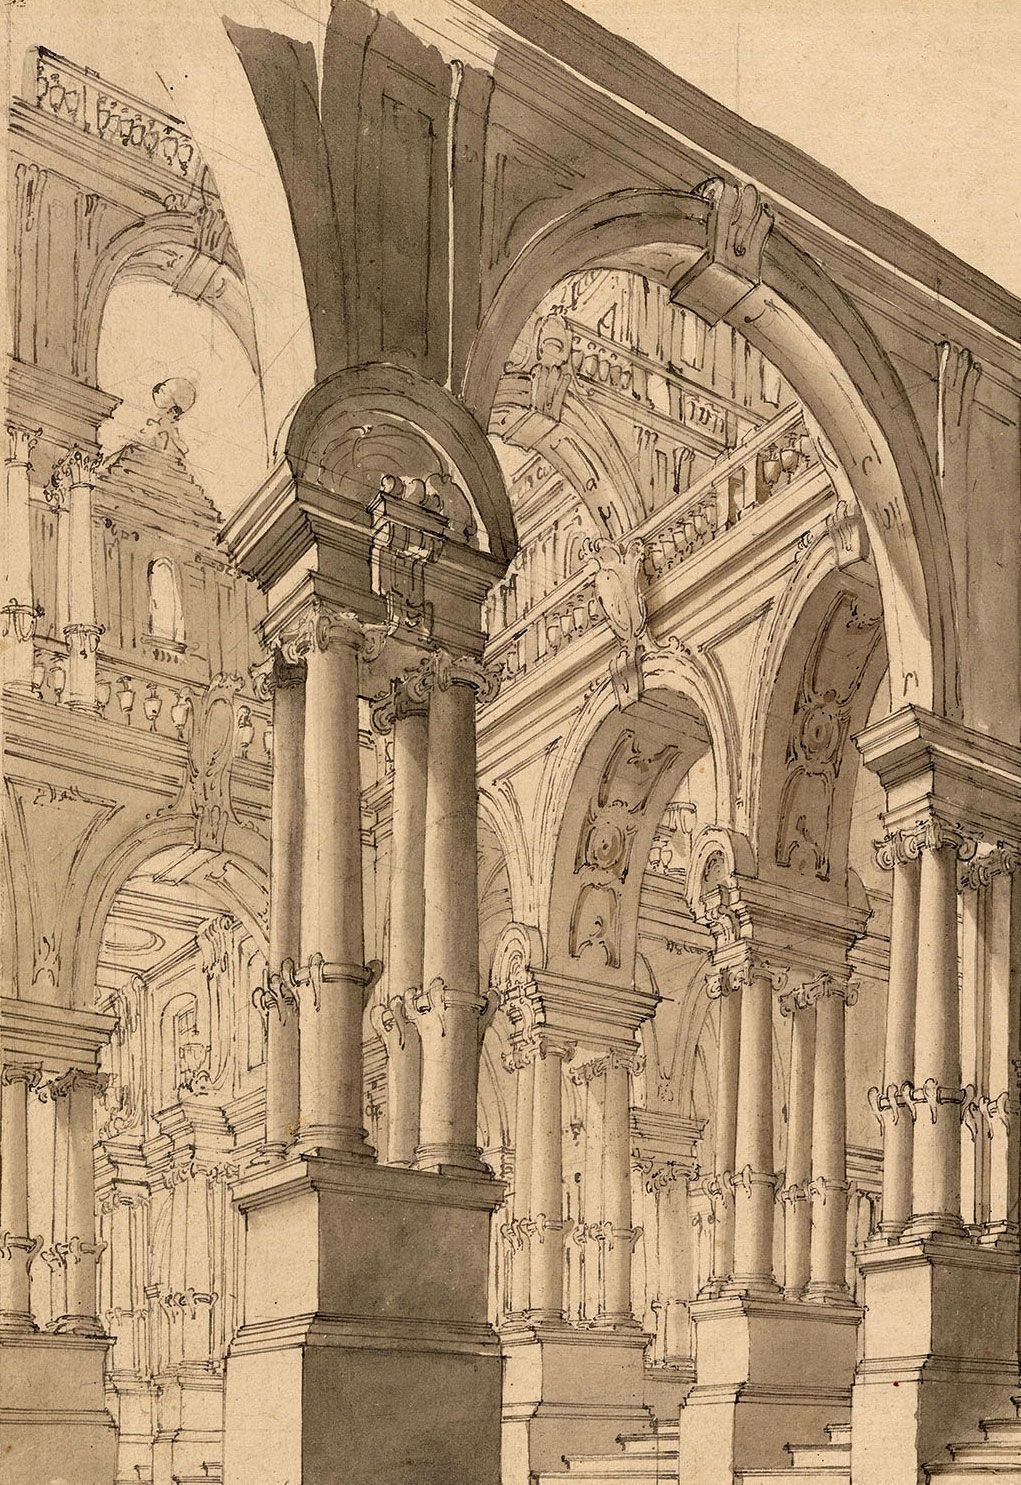 Giuseppe galli bibiena museums detail and architecture for Printing architectural drawings